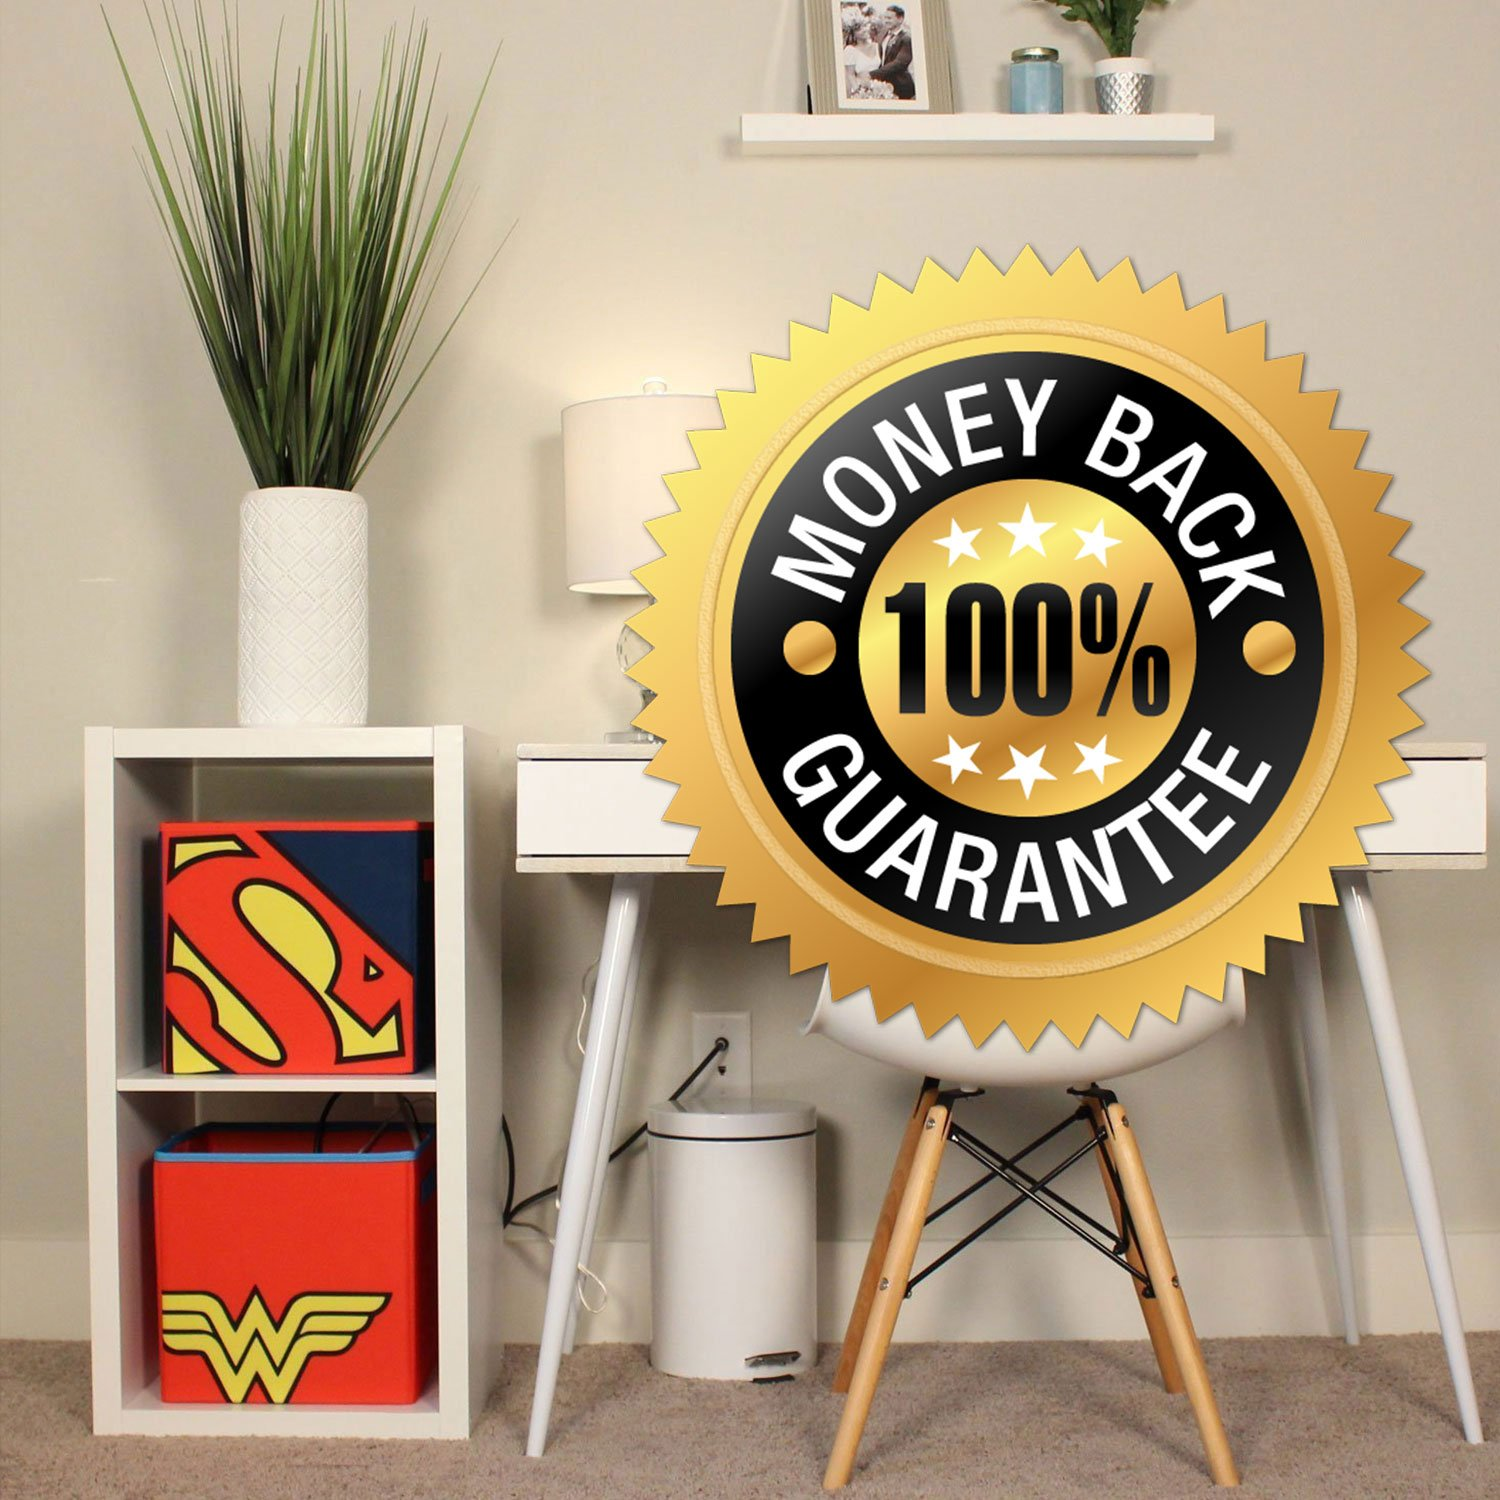 Everything Mary Superman Collapsible Storage Bin by DC Comics - Cube Organizer for Closet, Kids Bedroom Box, Playroom Chest - Foldable Home Decor Basket Container with Strong Handles and Design by Everything Mary (Image #7)